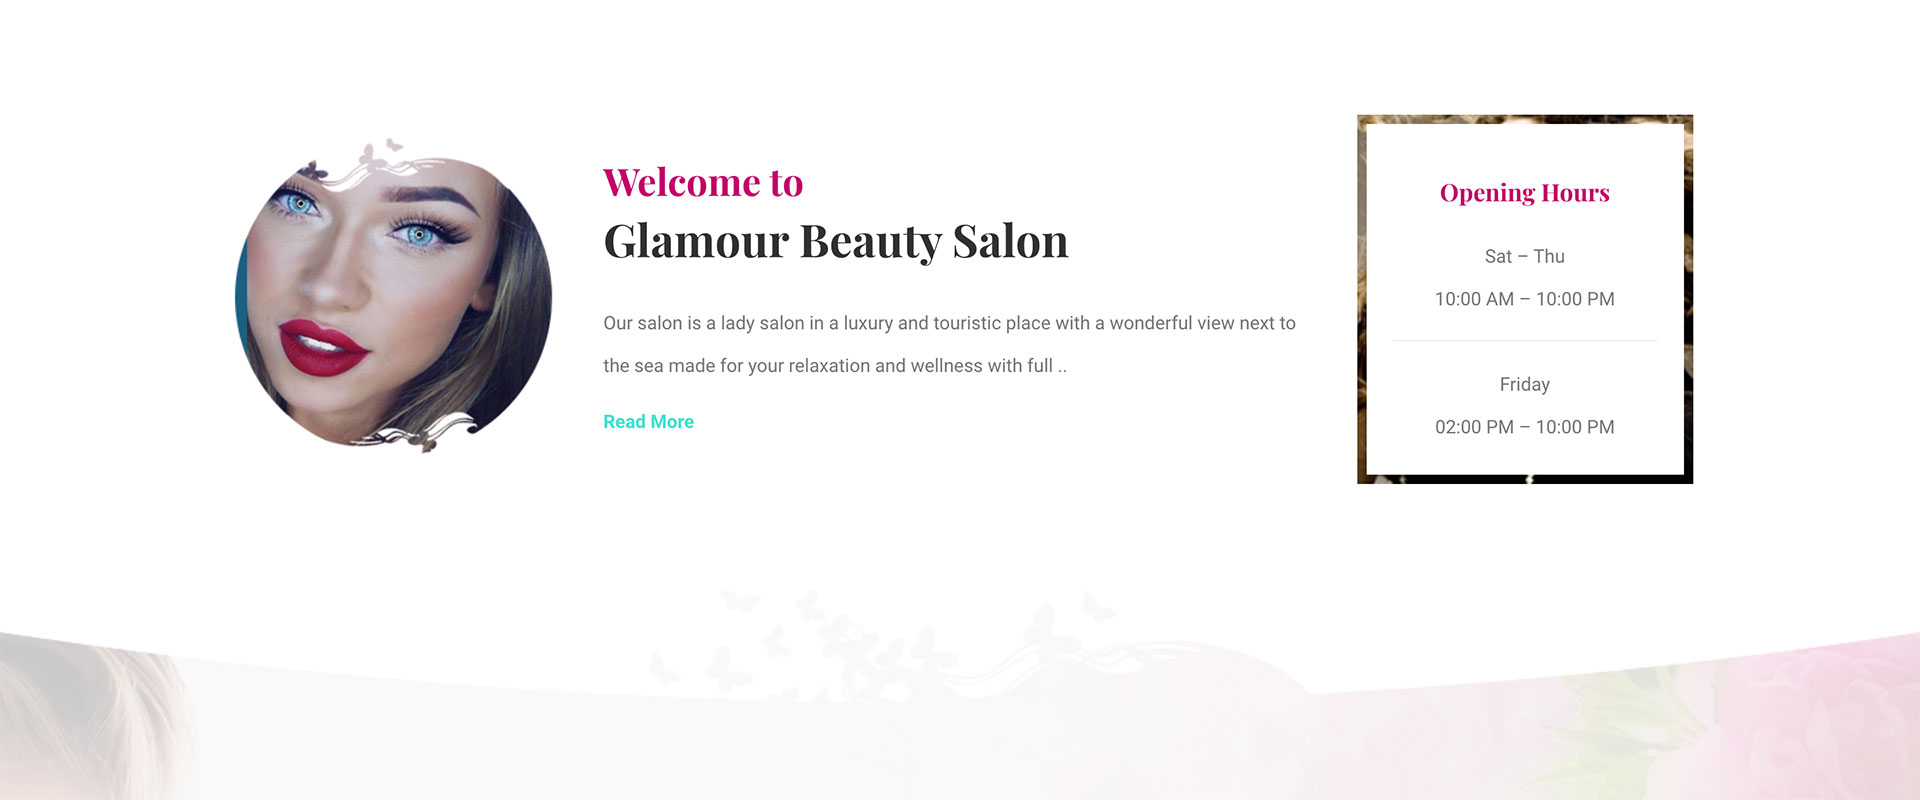 Glamour Beauty Salon Qatar